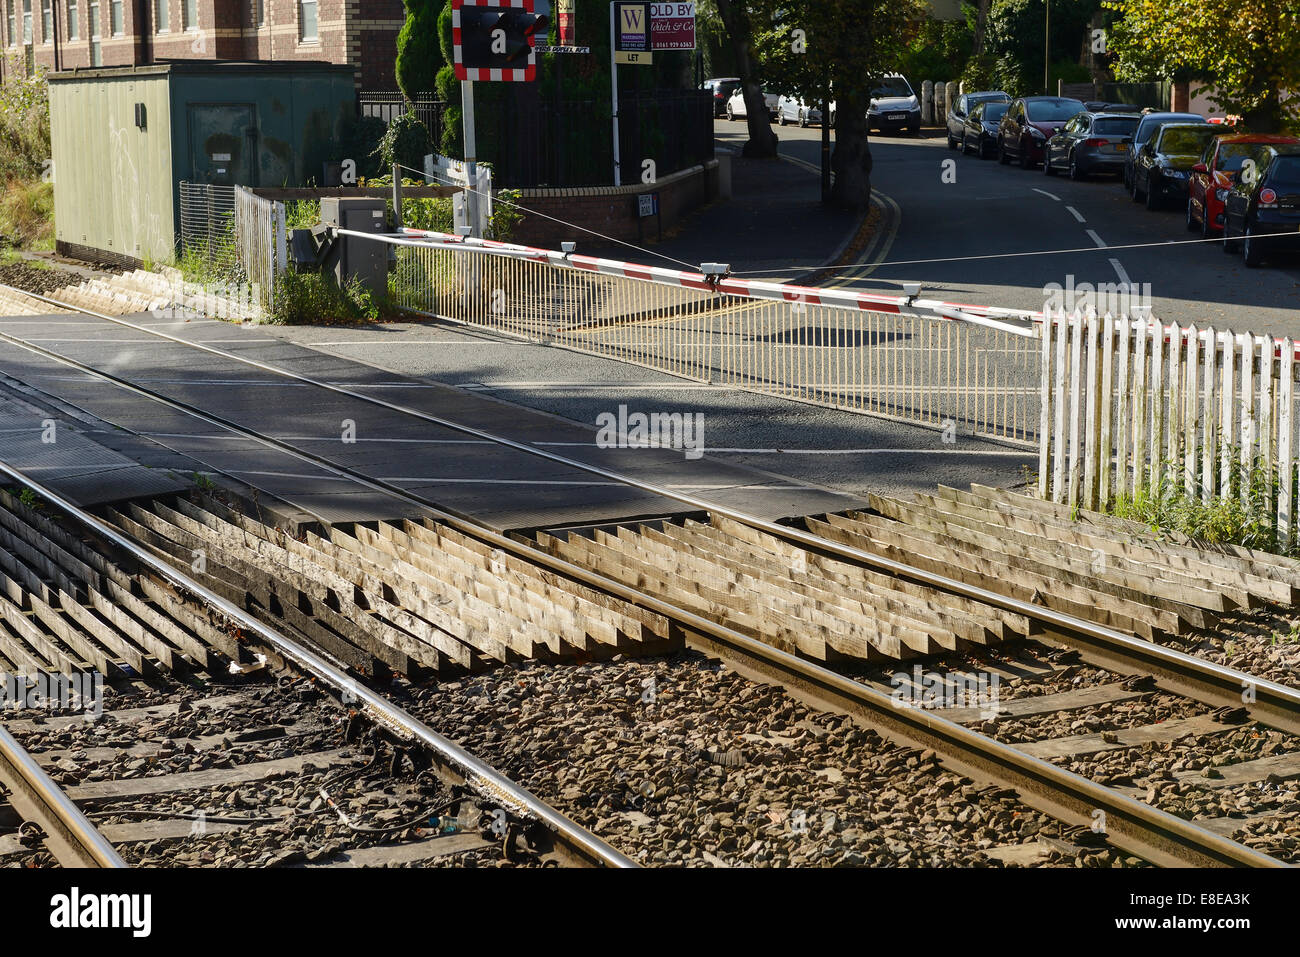 The level crossing at Ashley Road in Hale Greater Manchester UK - Stock Image